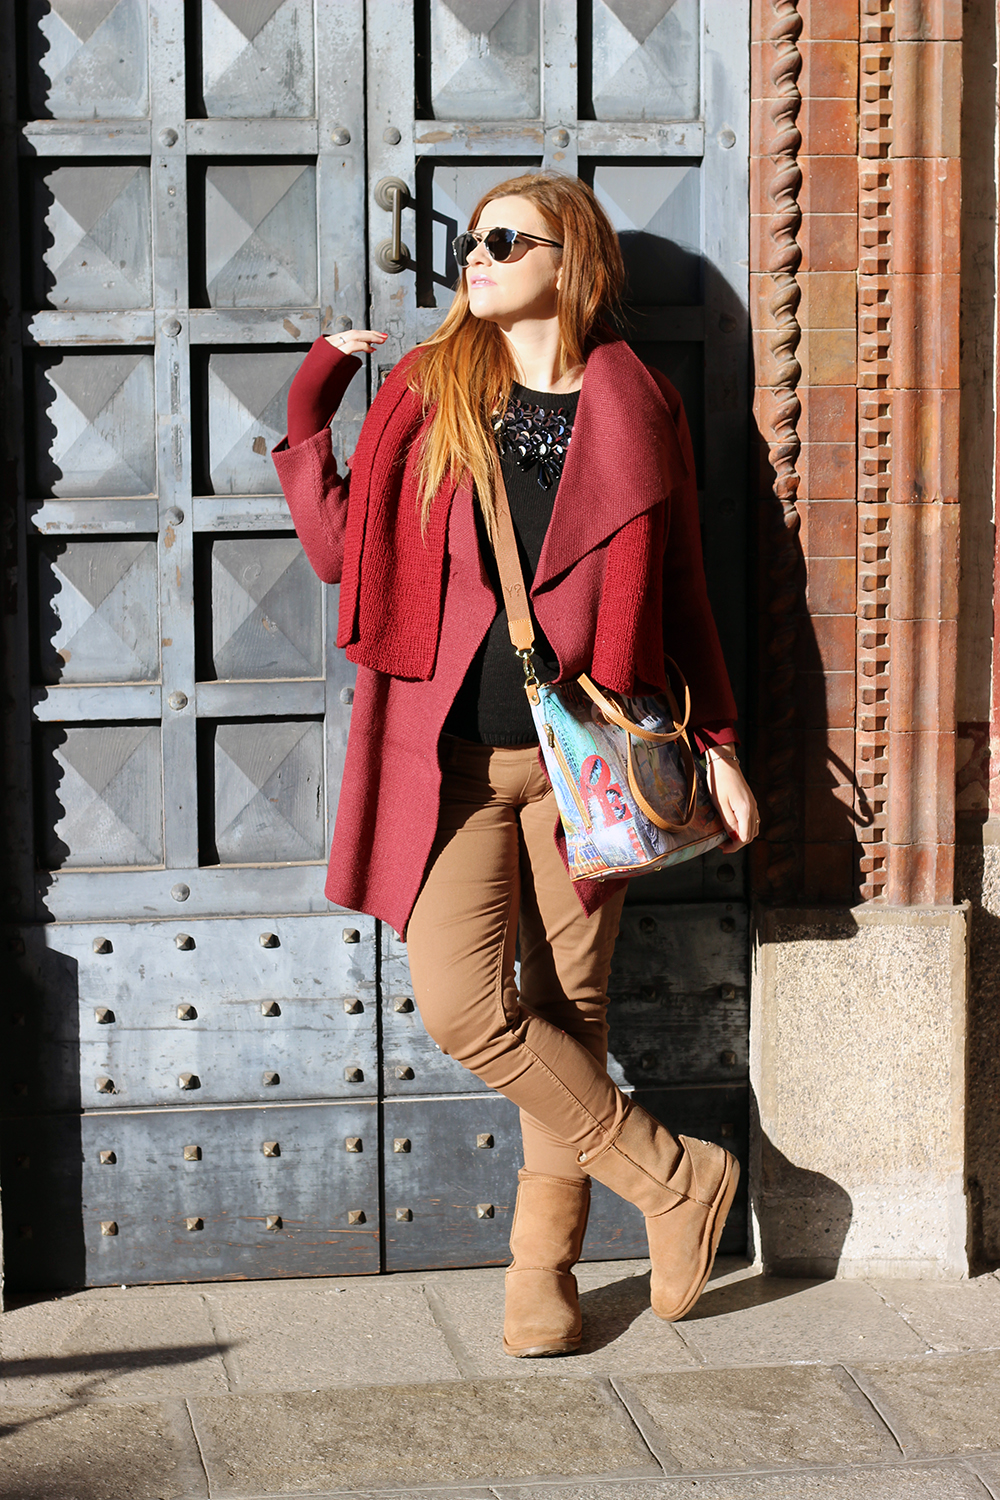 WINTER LOOK TRAVEL BAG DA VIAGGIO YNOT ELISABETTA BERTOLINI FASHION BLOGGER OUTFIT GRAVIDANZA